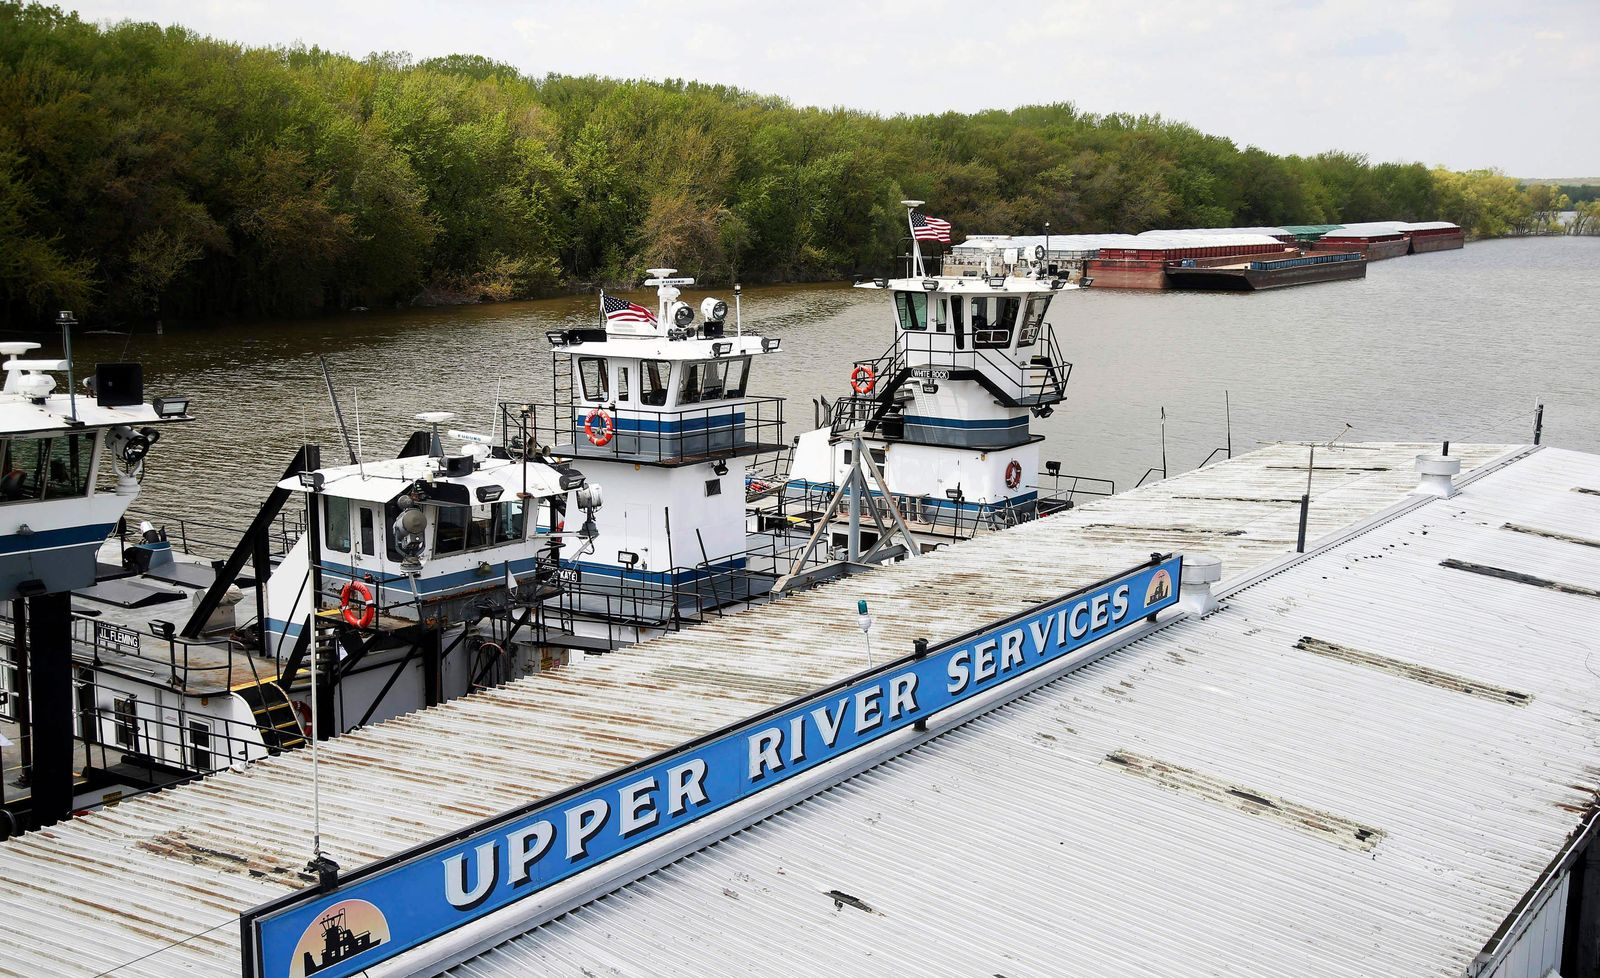 In this Tuesday, May 14, 2019 photo, empty barges, background right, are moored at the Upper River Services along with tug boats on the Mississippi River in St. Paul, Minn., as spring flooding interrupts shipments on the river.{ } (AP Photo/Jim Mone)